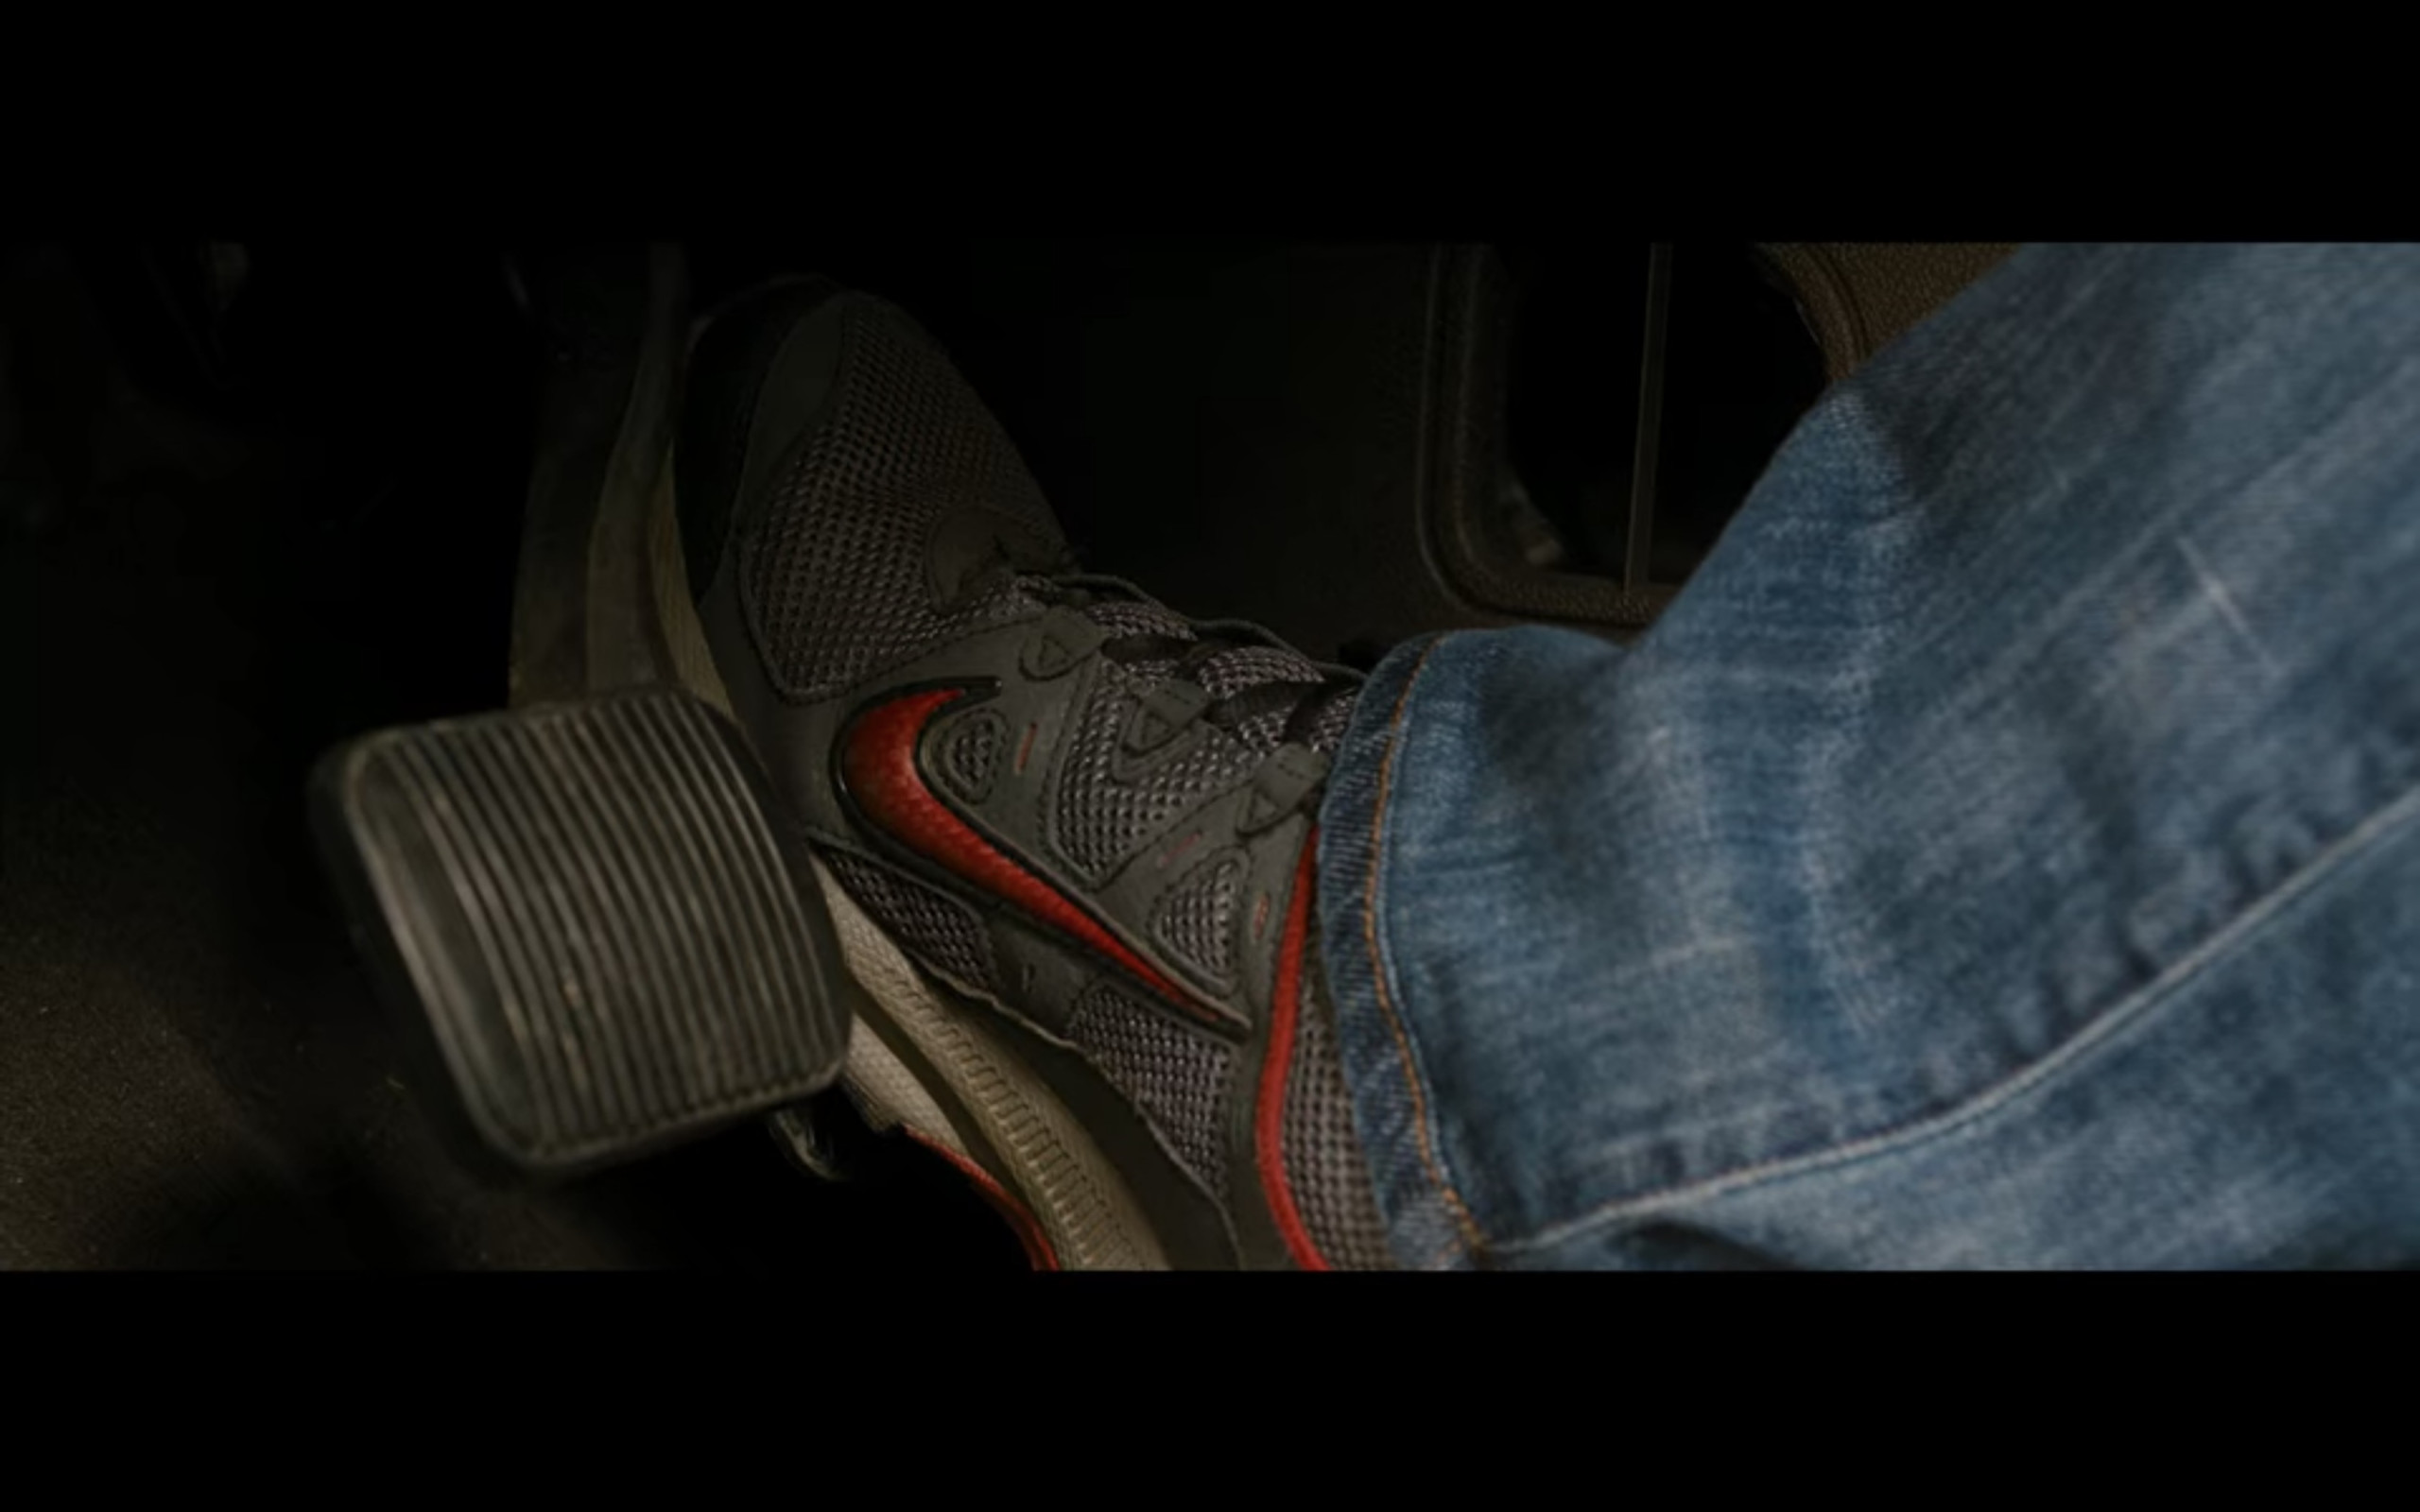 Nike Shoes Worn By Jason Bateman In Identity Thief 2013